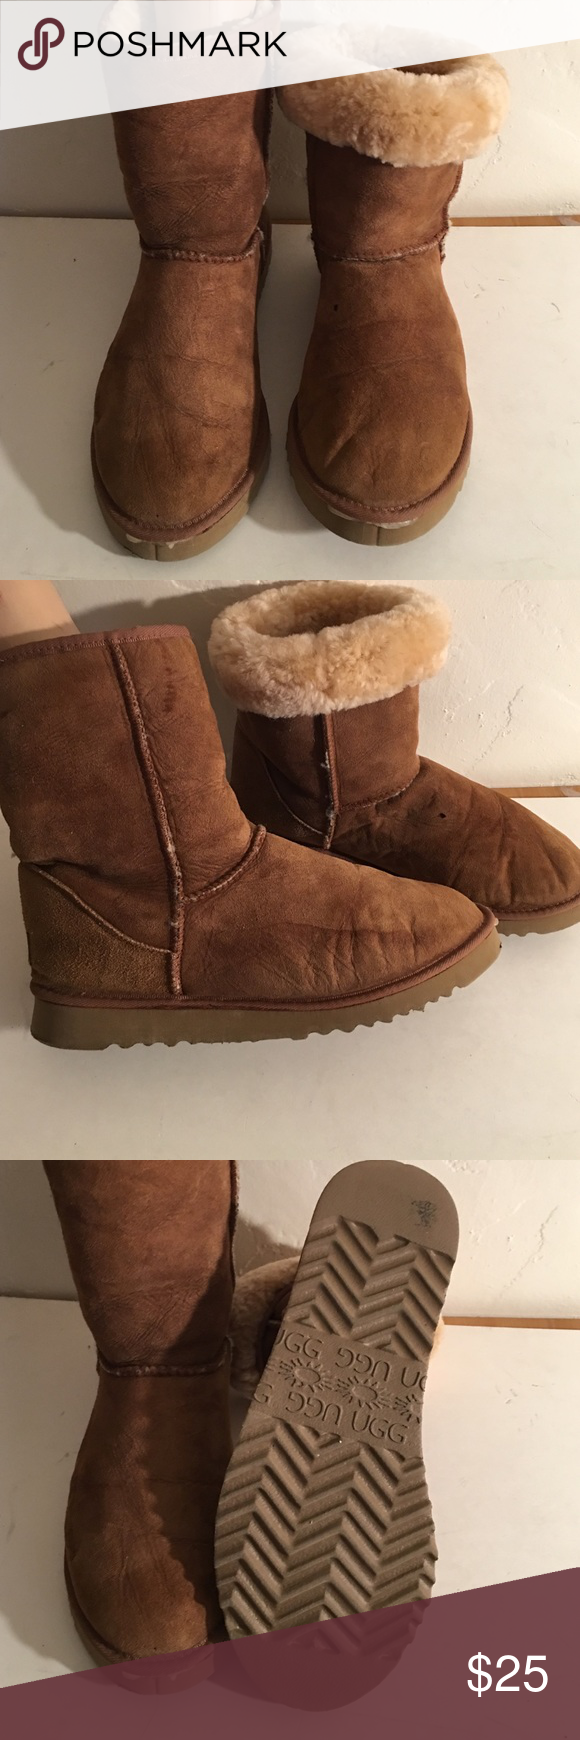 UGG MENS SHORT CLASSIC 5800 FUR LINED BOOTS 11 PREOWNED WORN STILL GOOD CONDITION FUR SOFT AND  FULL SOME COSMETIC WEAR SEE PHOTOS UGG Shoes Winter & Rain Boots